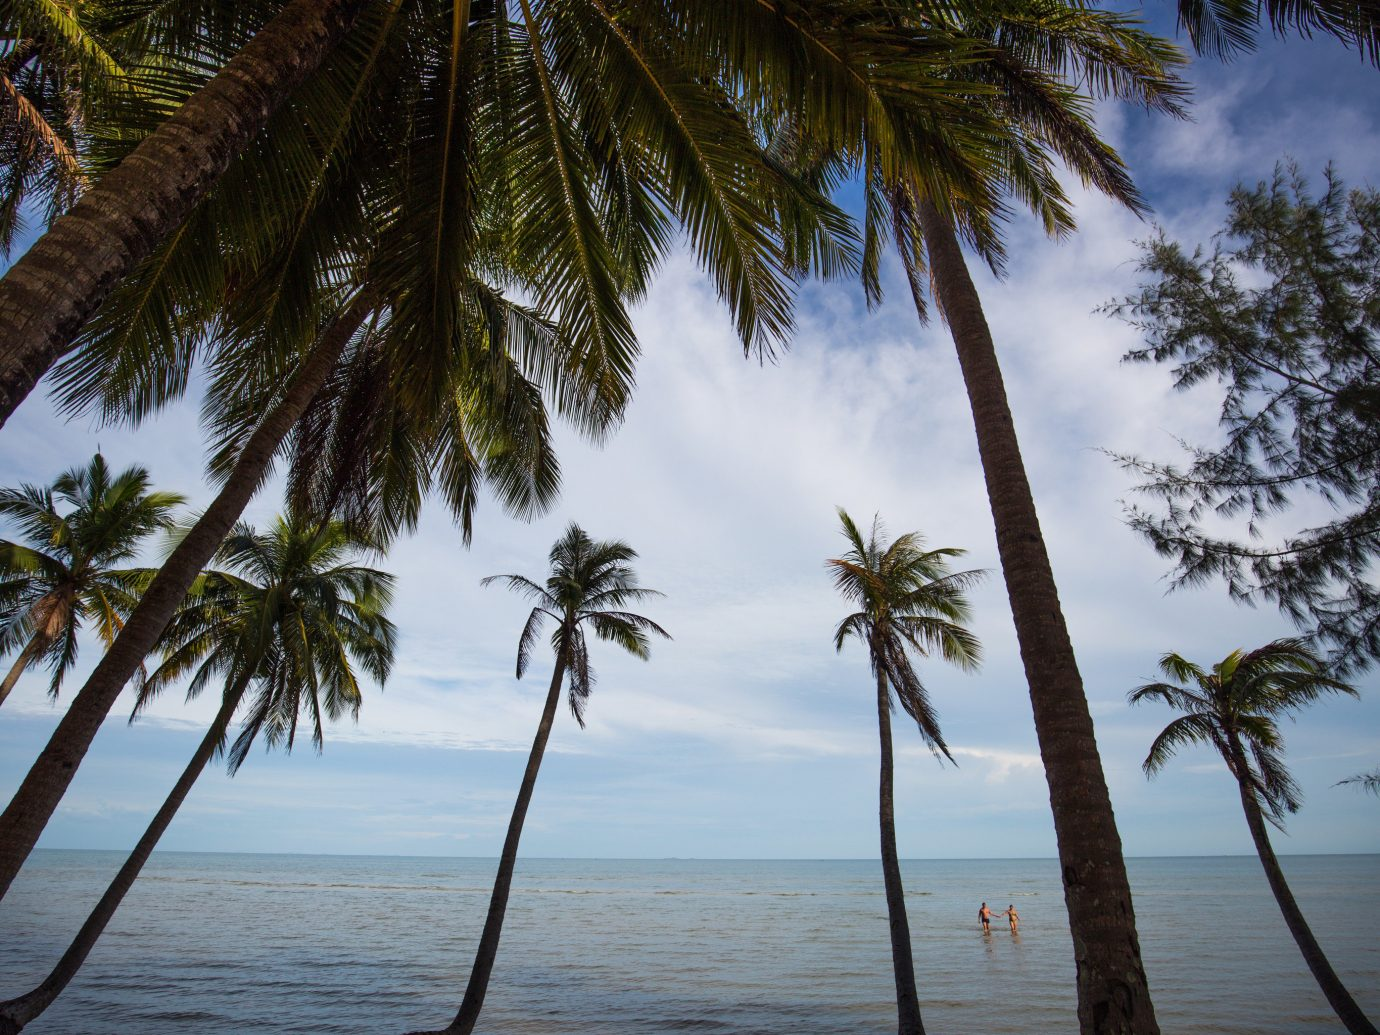 Secret Getaways Trip Ideas tree water palm outdoor sky plant Beach palm family body of water tropics Sea Lake Ocean vacation caribbean arecales land plant woody plant Coast flowering plant lined shore sandy shade